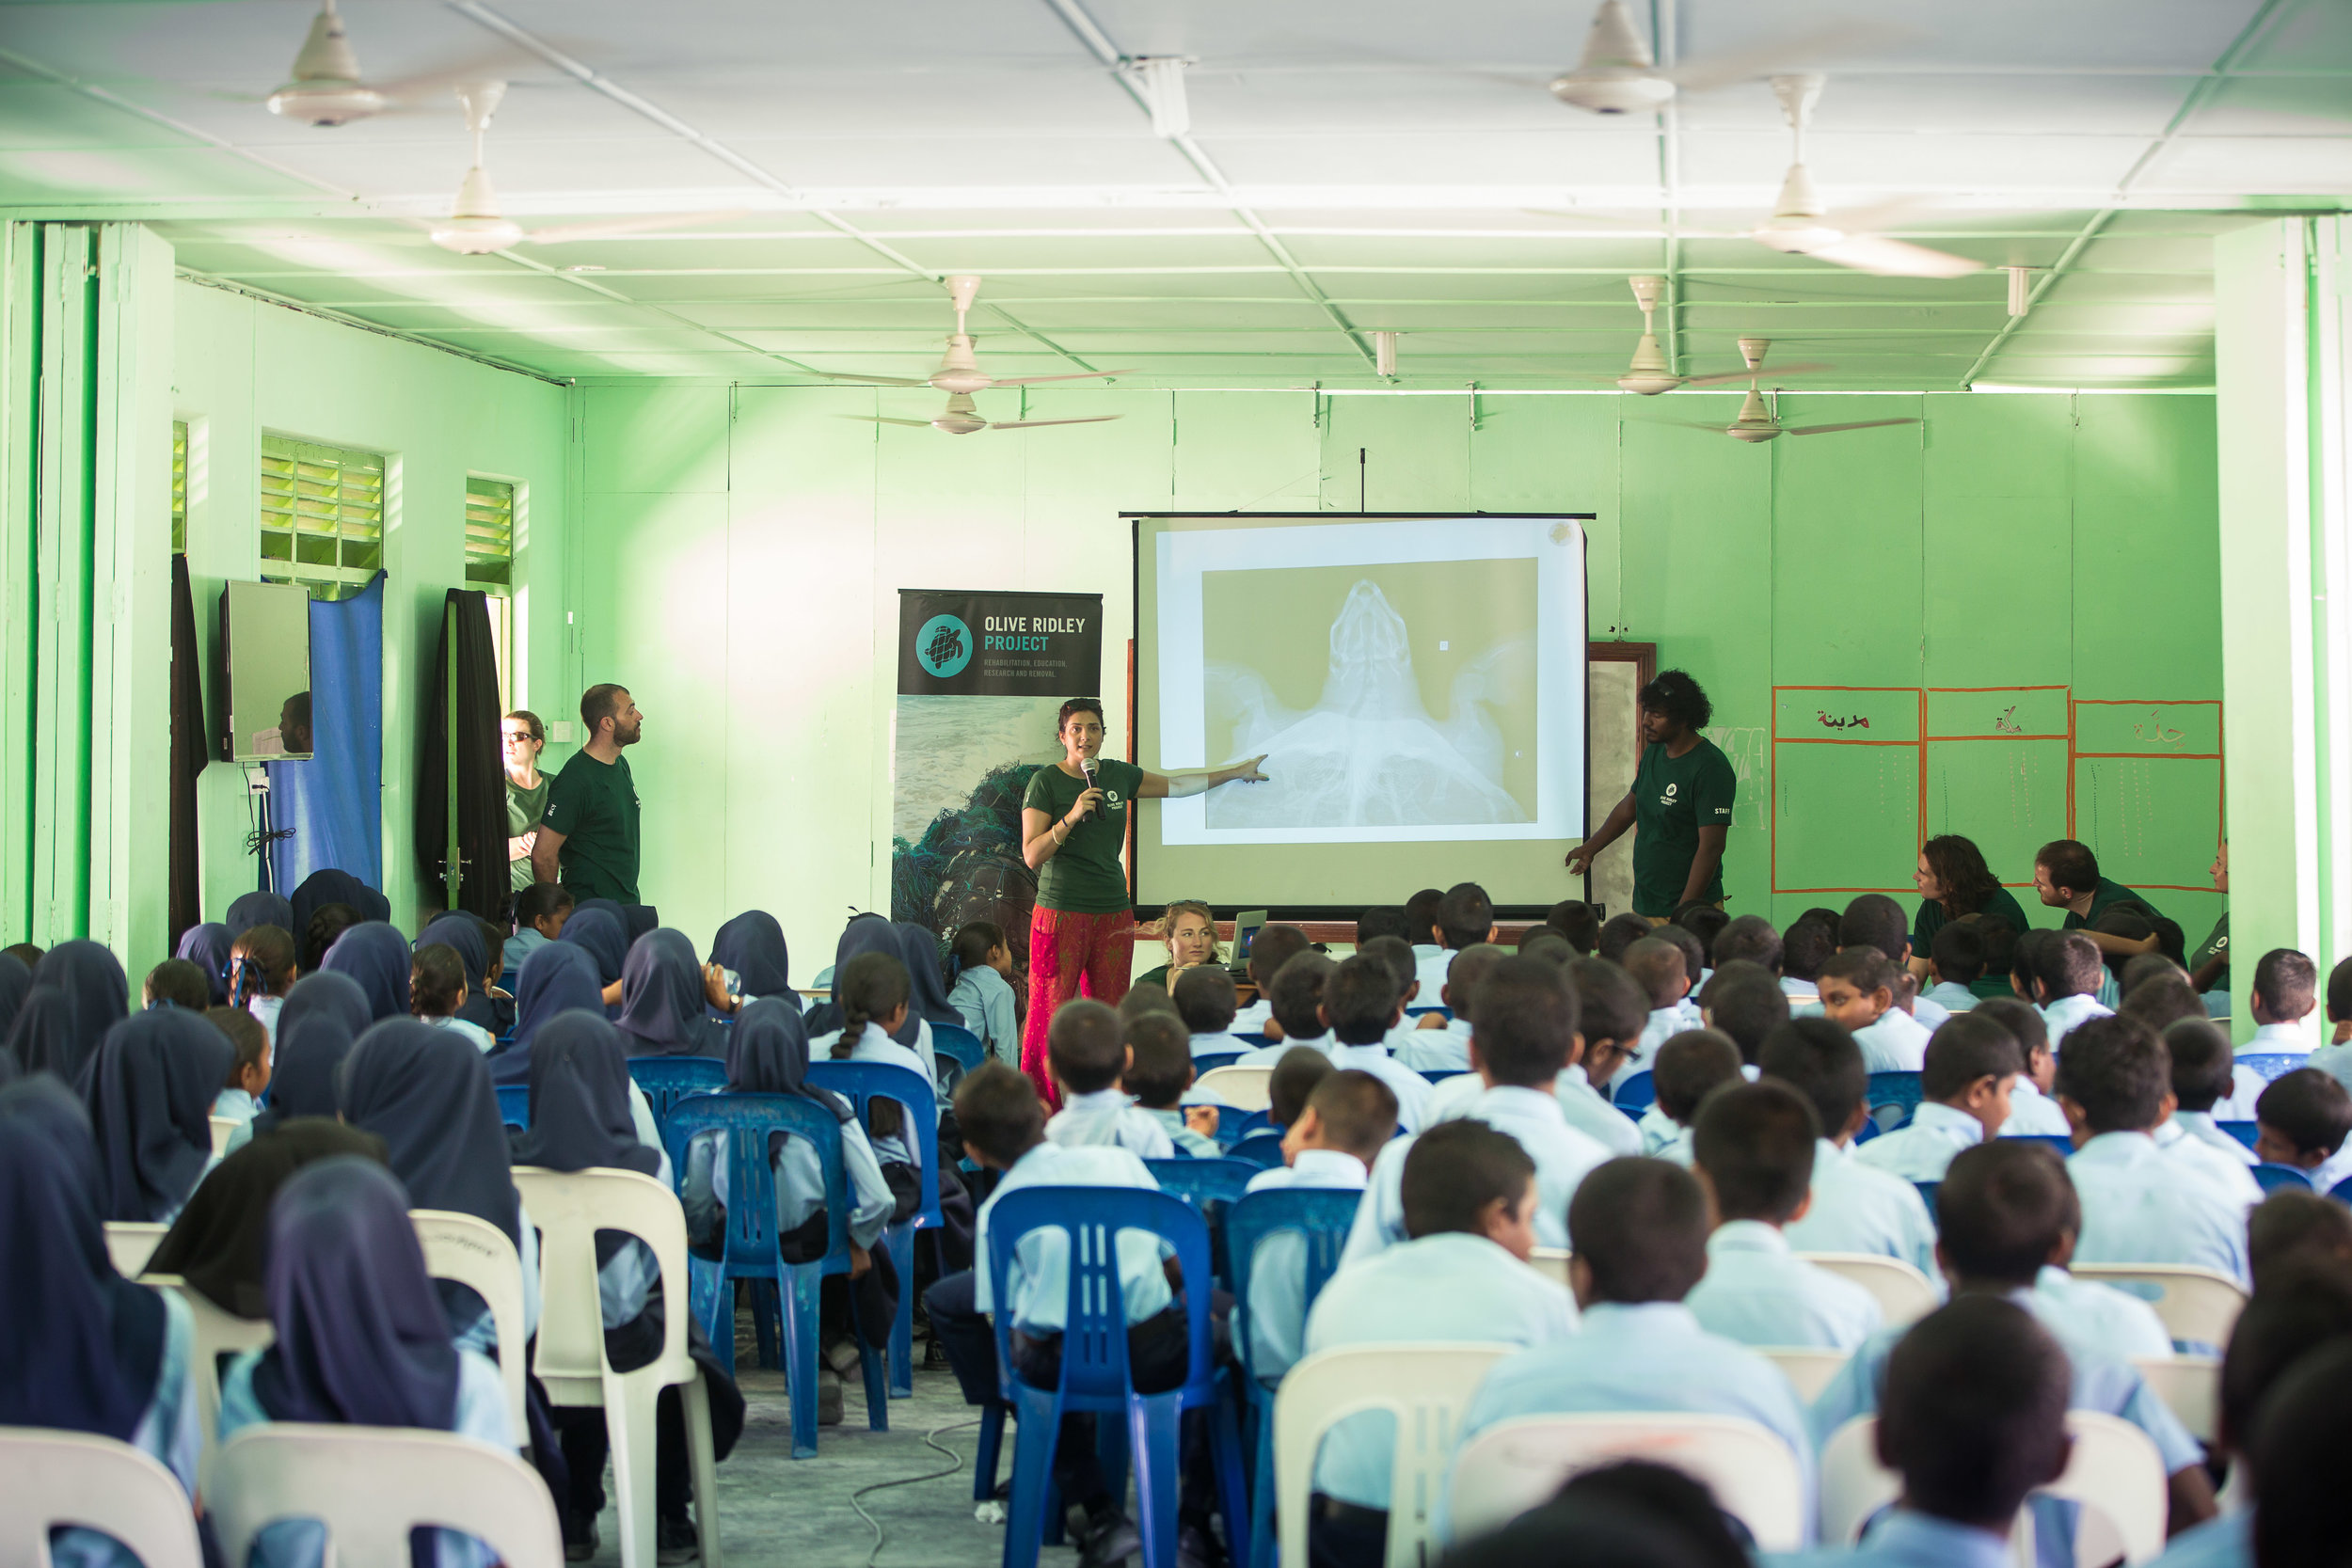 Olive Ridley Project's amazing outreach work